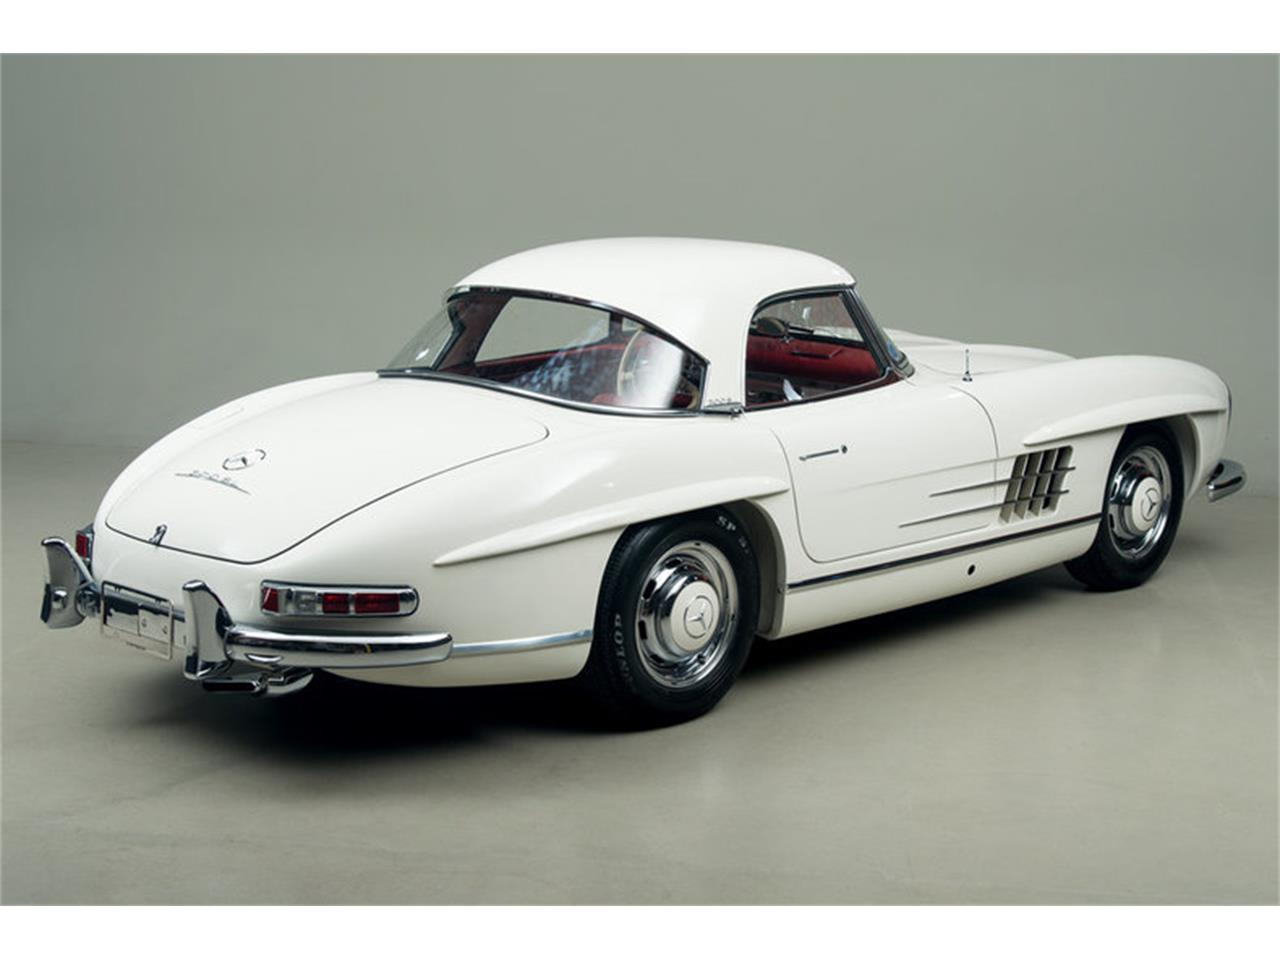 Large Picture of '63 Mercedes-Benz 300SL Roadster located in Scotts Valley California Offered by Canepa - EFPZ